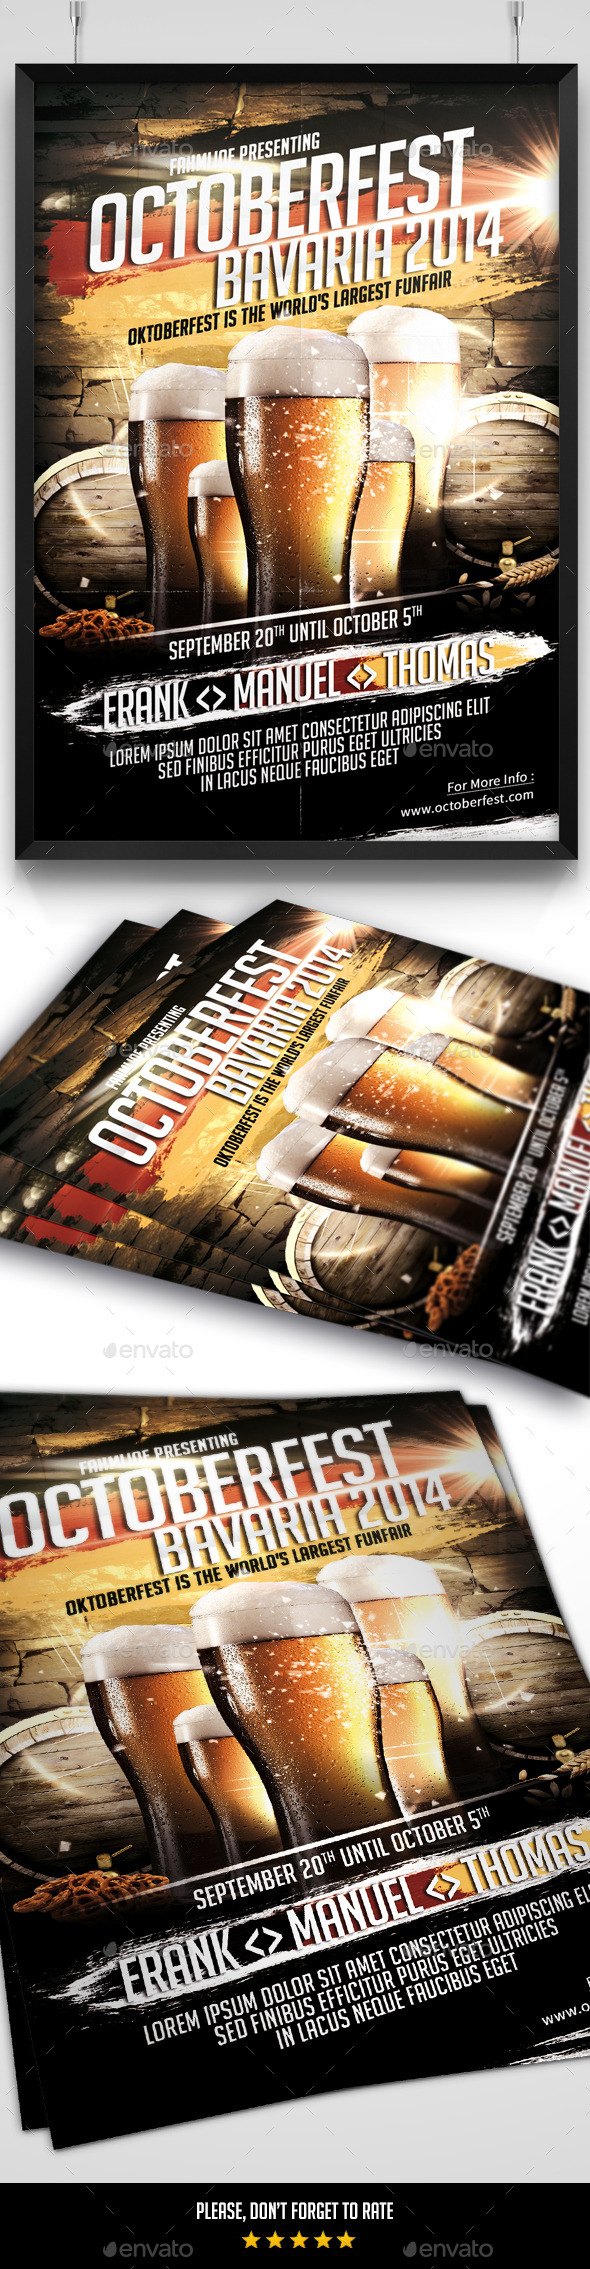 GraphicRiver Oktoberfest 2014 Flyer 8975892